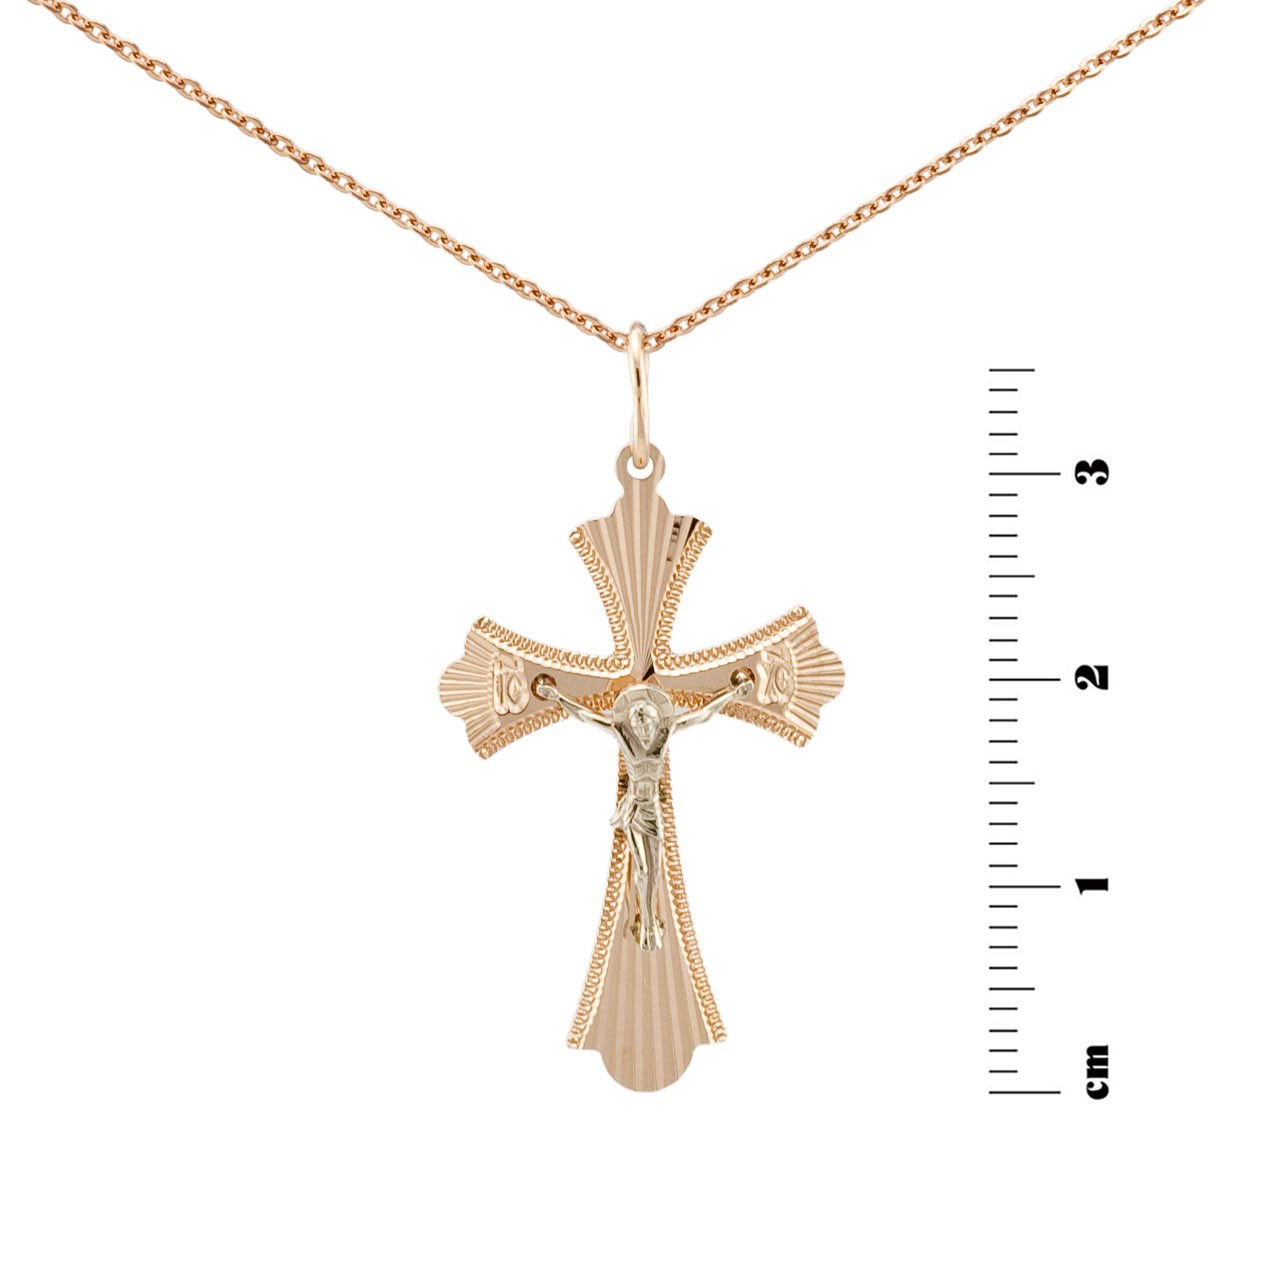 Romanian orthodox cross 1